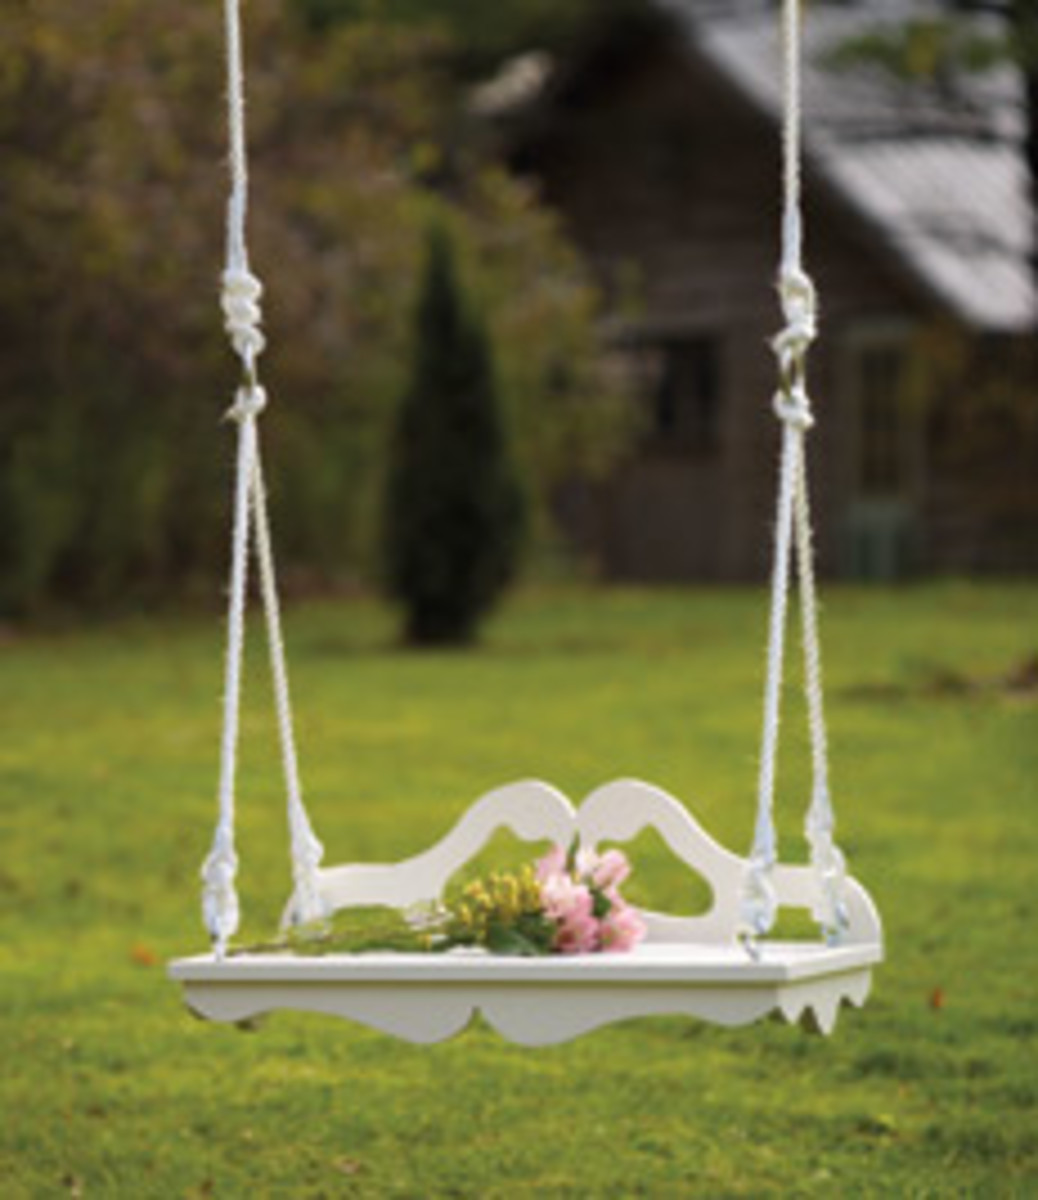 Home design ideas victorian swings perfect for the porch and beyond - Wooden garden swing seat plans perfect tranquility ...